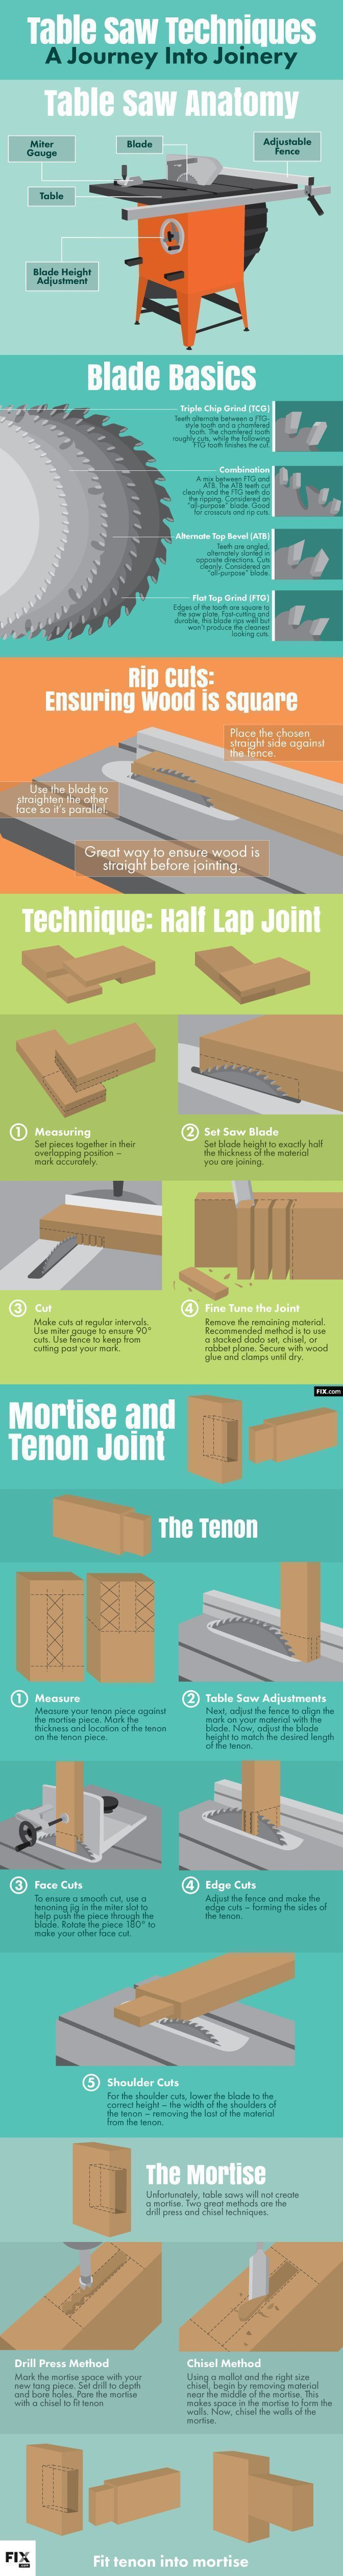 Table Saw Techniques http://www.fix.com/blog/table-saw-joinery-techniques/ #woodworkingbeginners